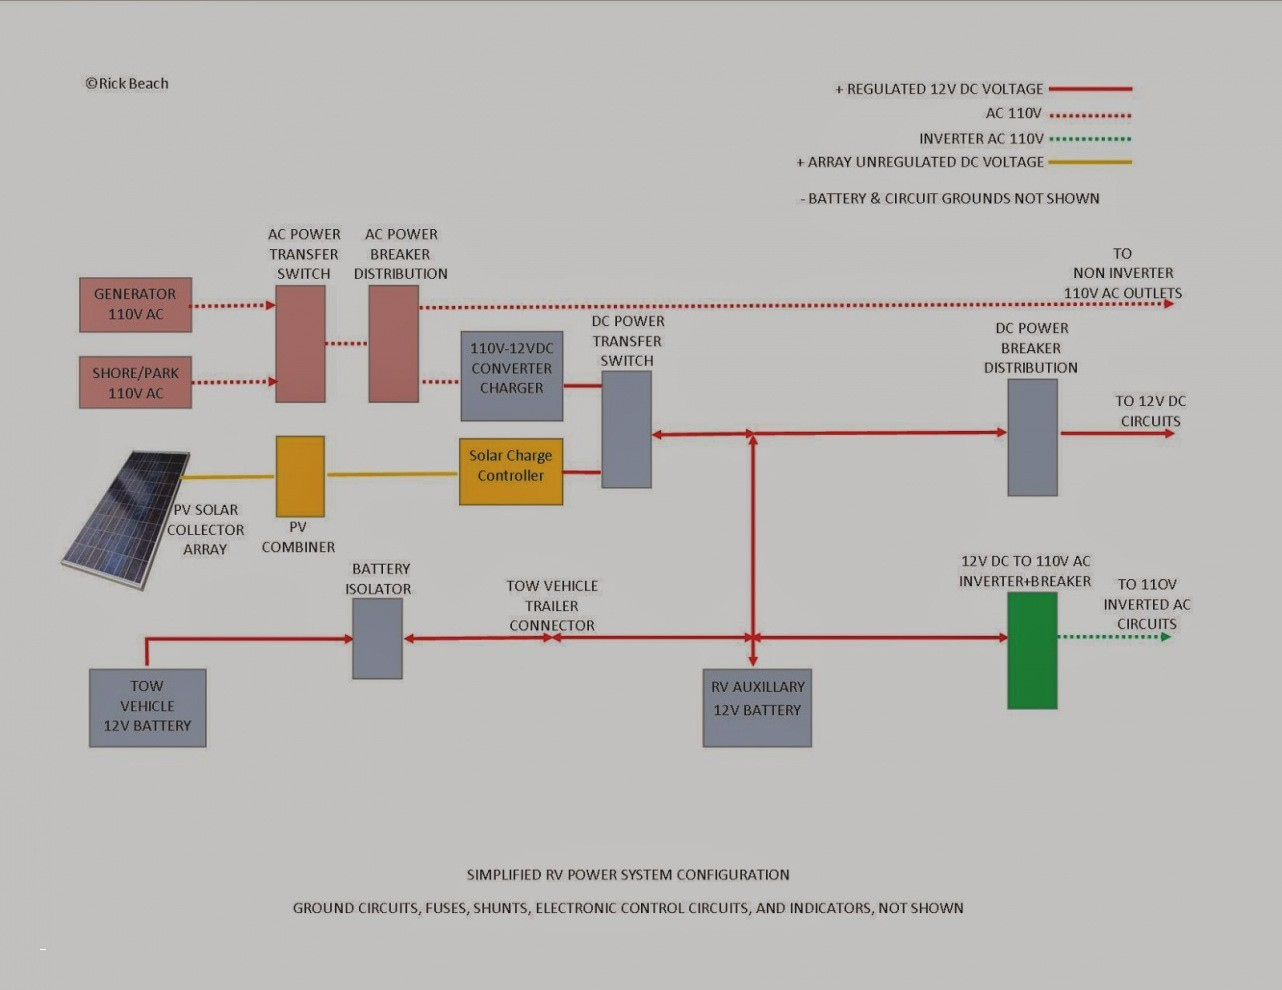 Electrical system wiring diagram rv holding tanks trusted wiring